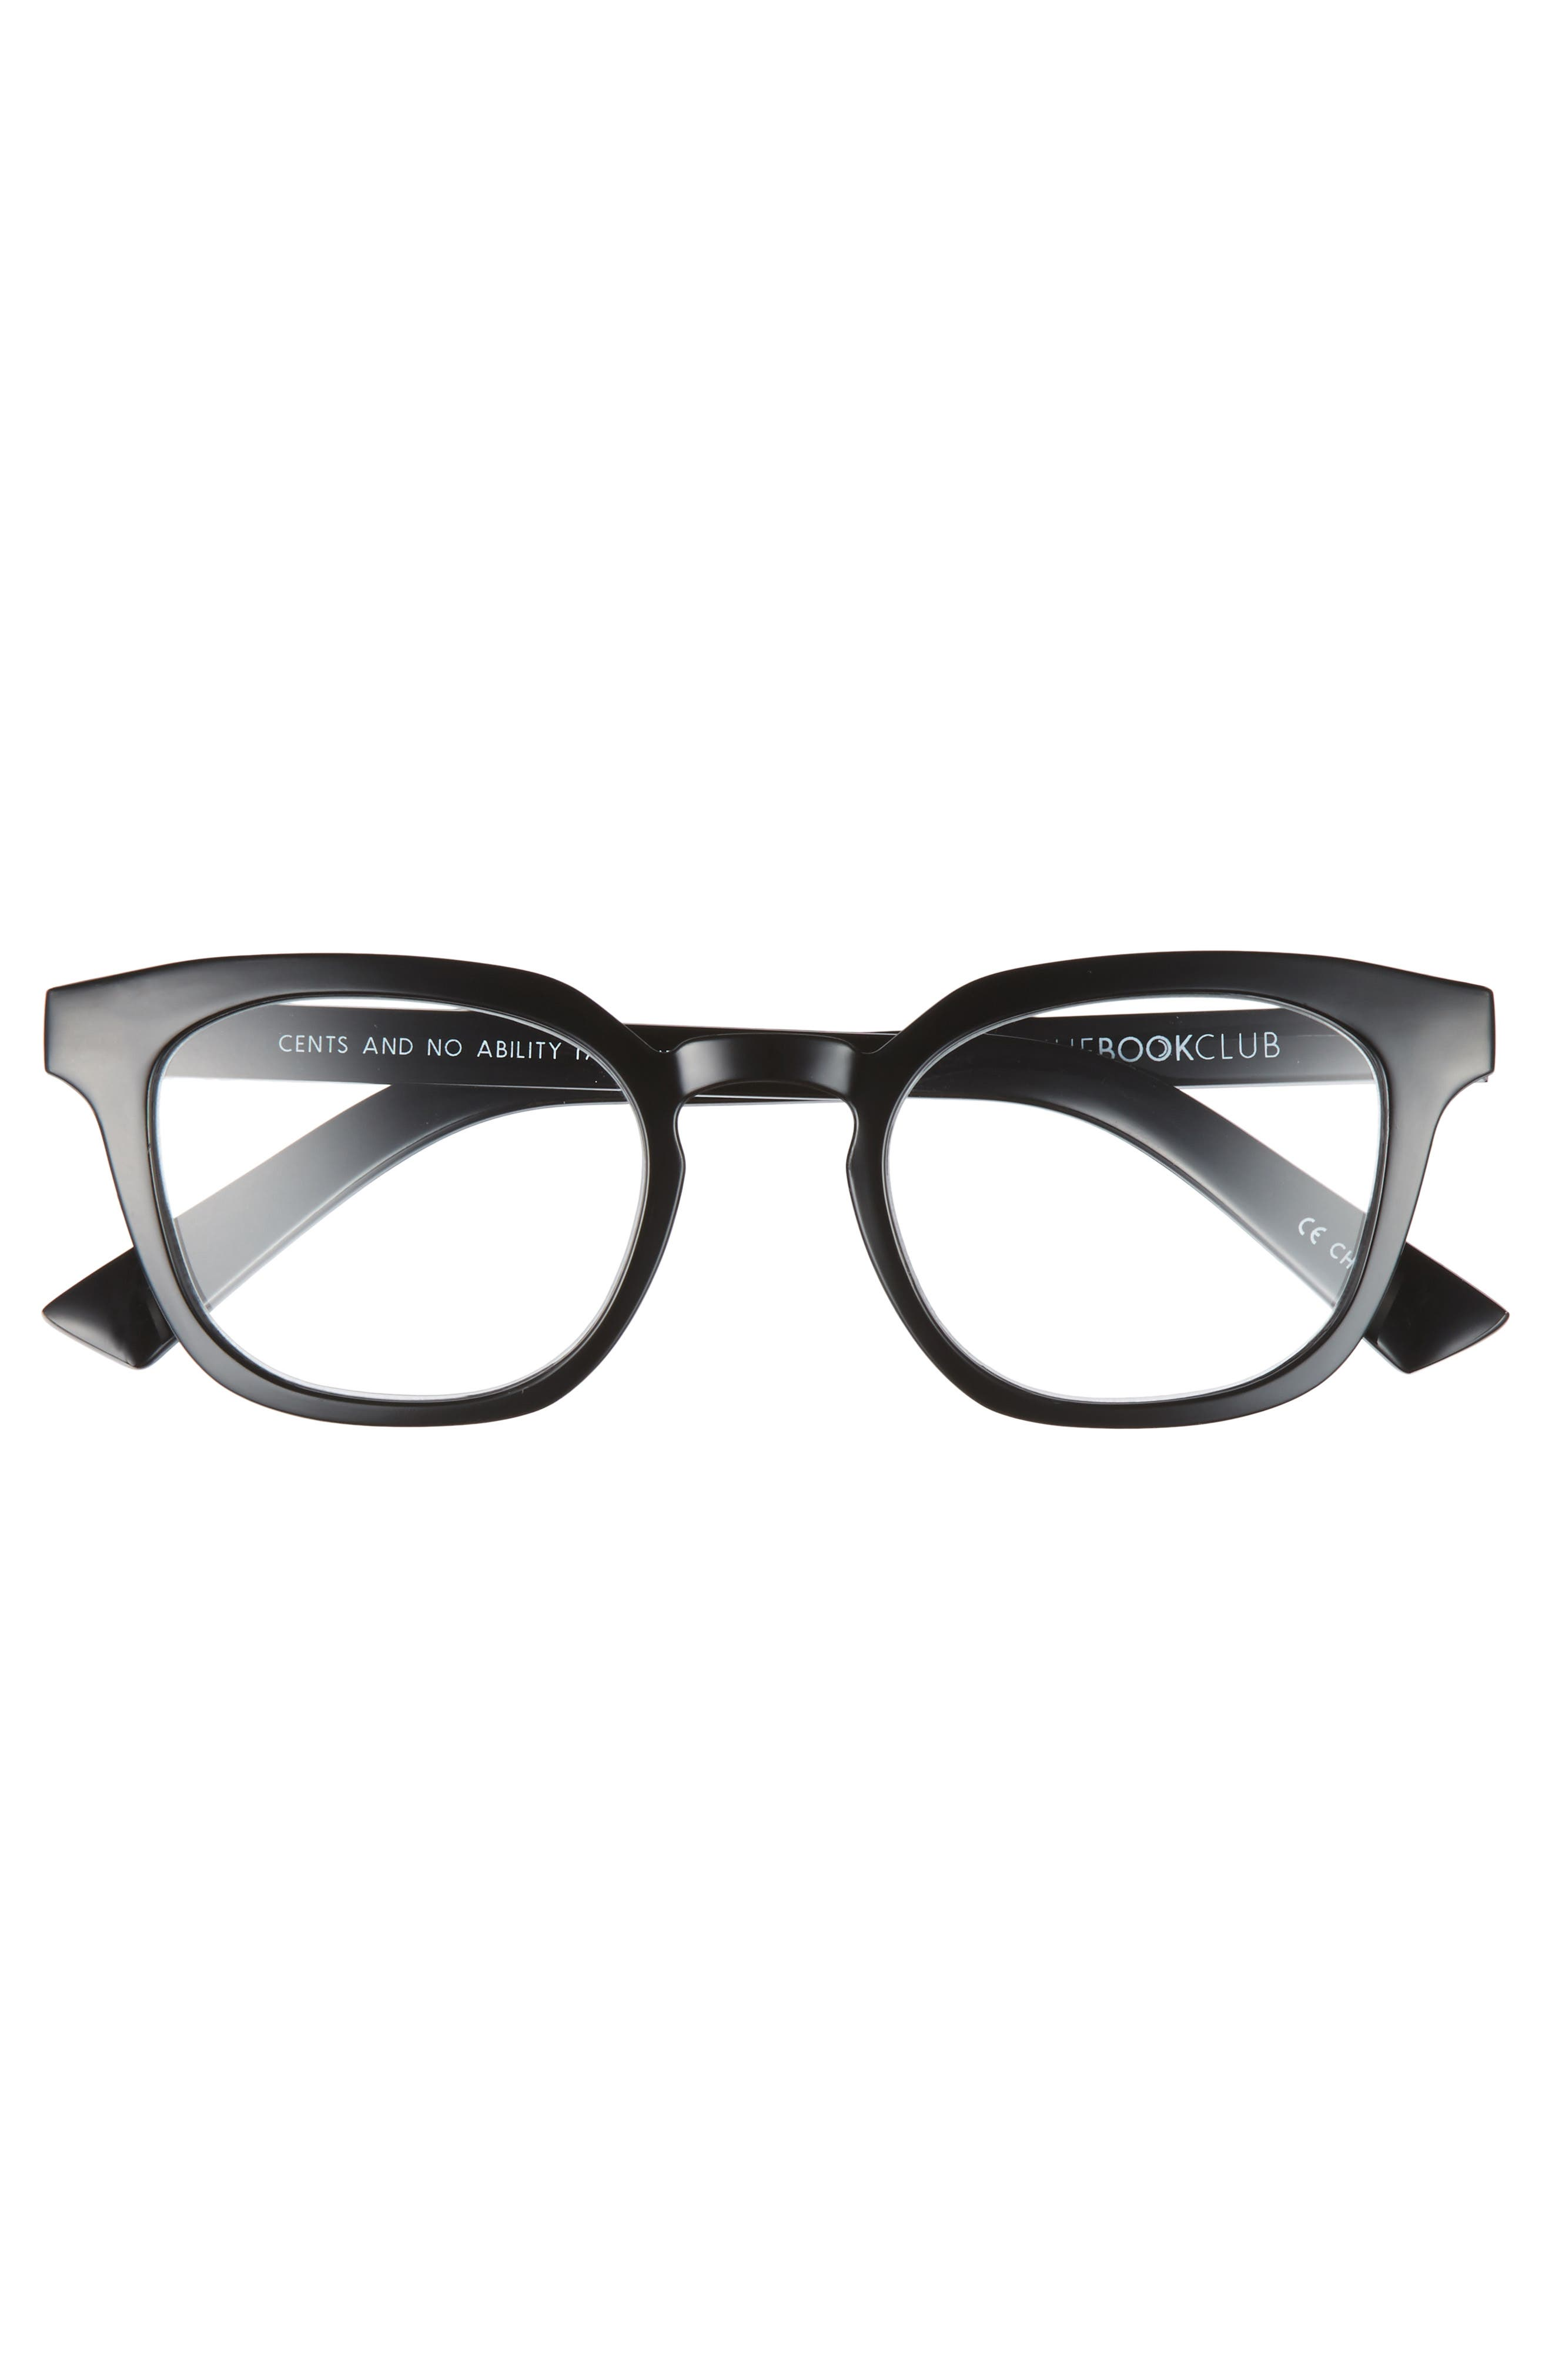 Cents and No Ability 48mm Reading Glasses,                             Alternate thumbnail 3, color,                             Black Marker